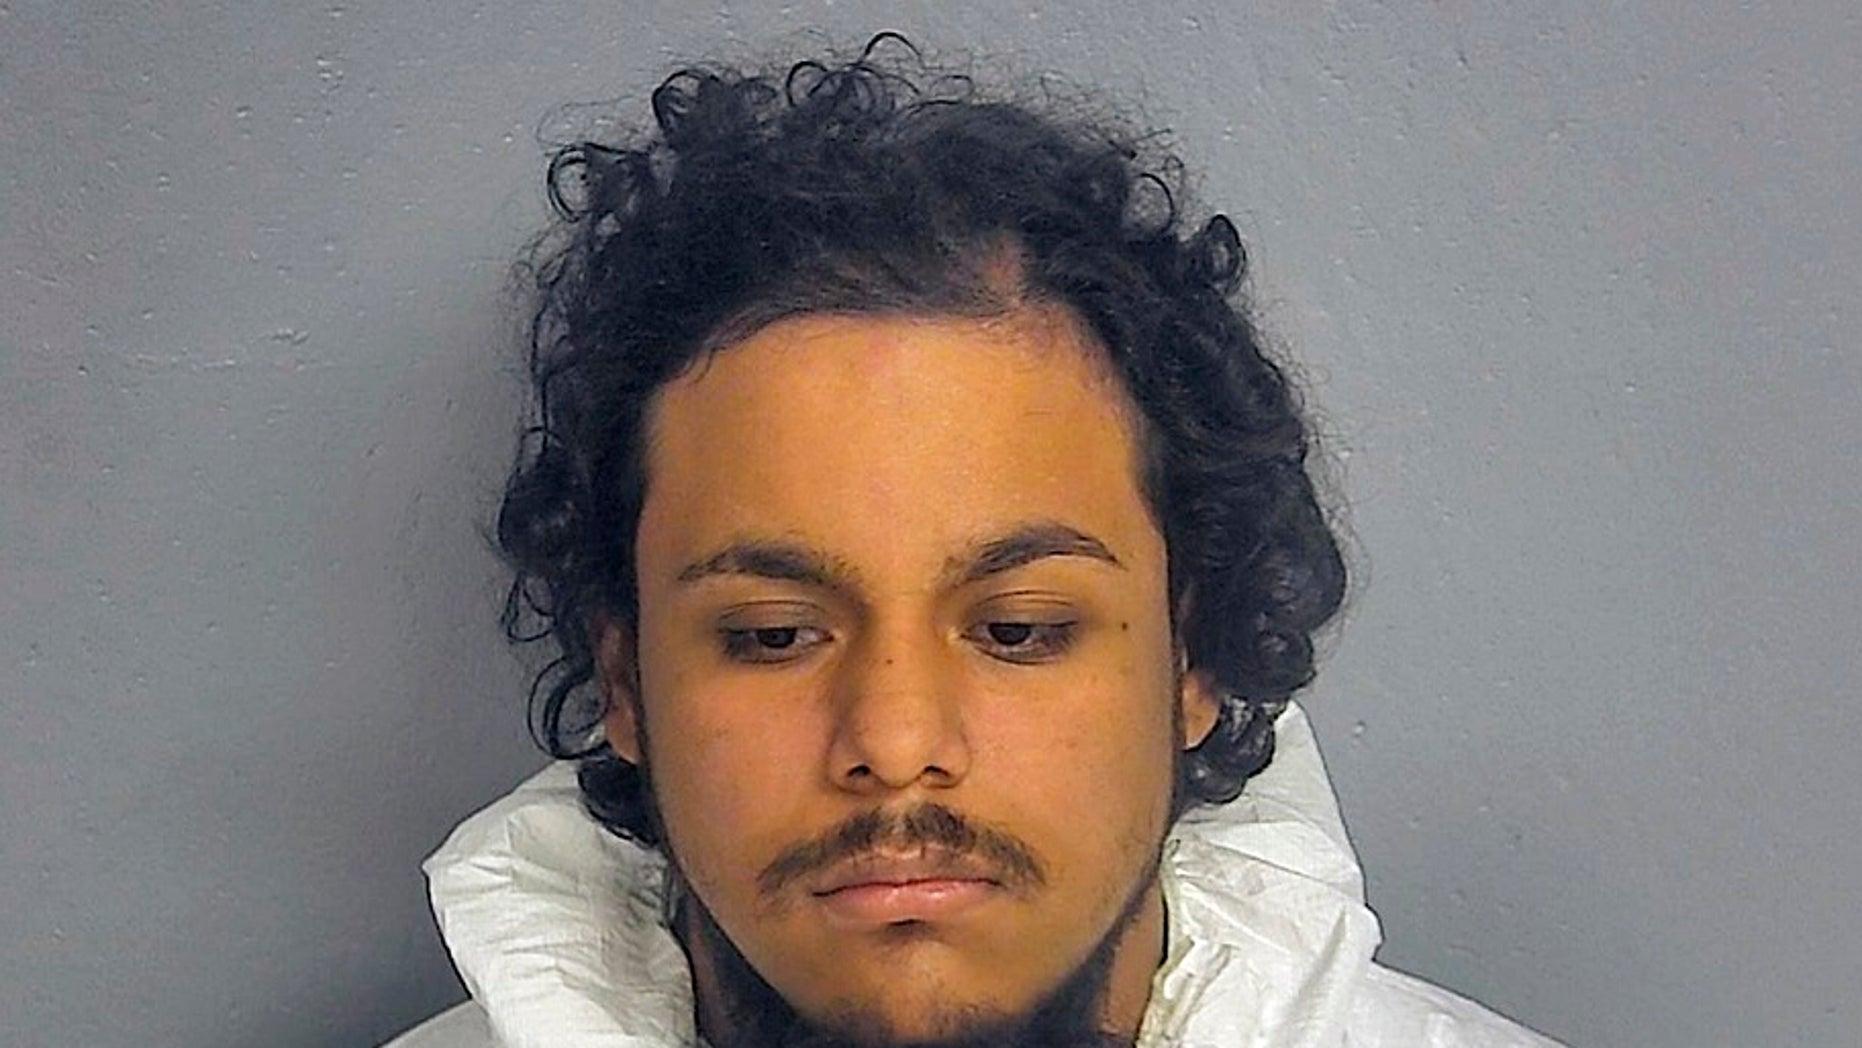 Luis Rodrigo Perez, 23, a Mexican national, is accused of killing three people in Missouri, authorities say.